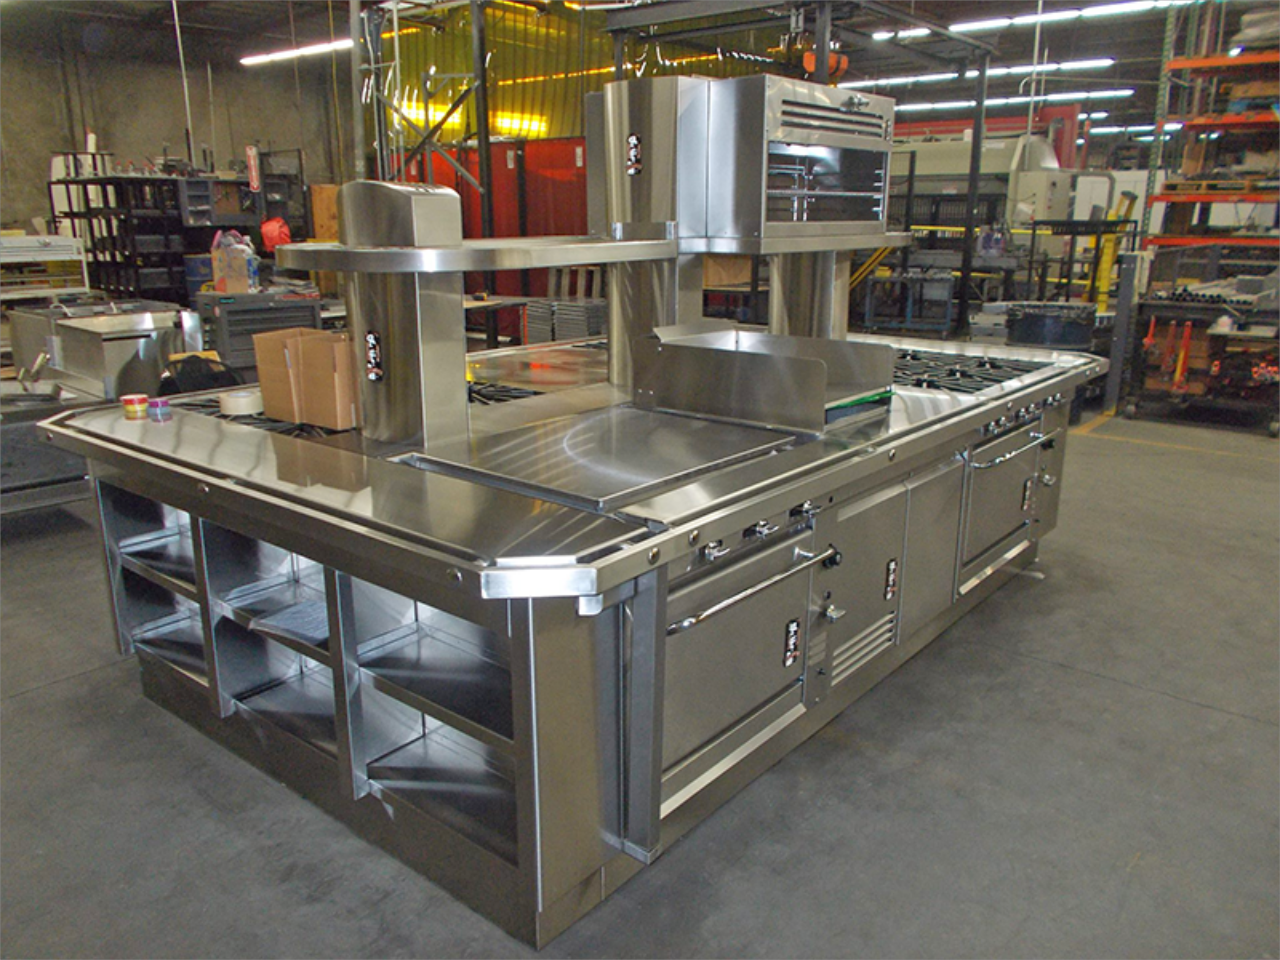 Lance Restaurant Supply has the largest inventory of commercial restaurant equipment in the Coastal Carolinas.